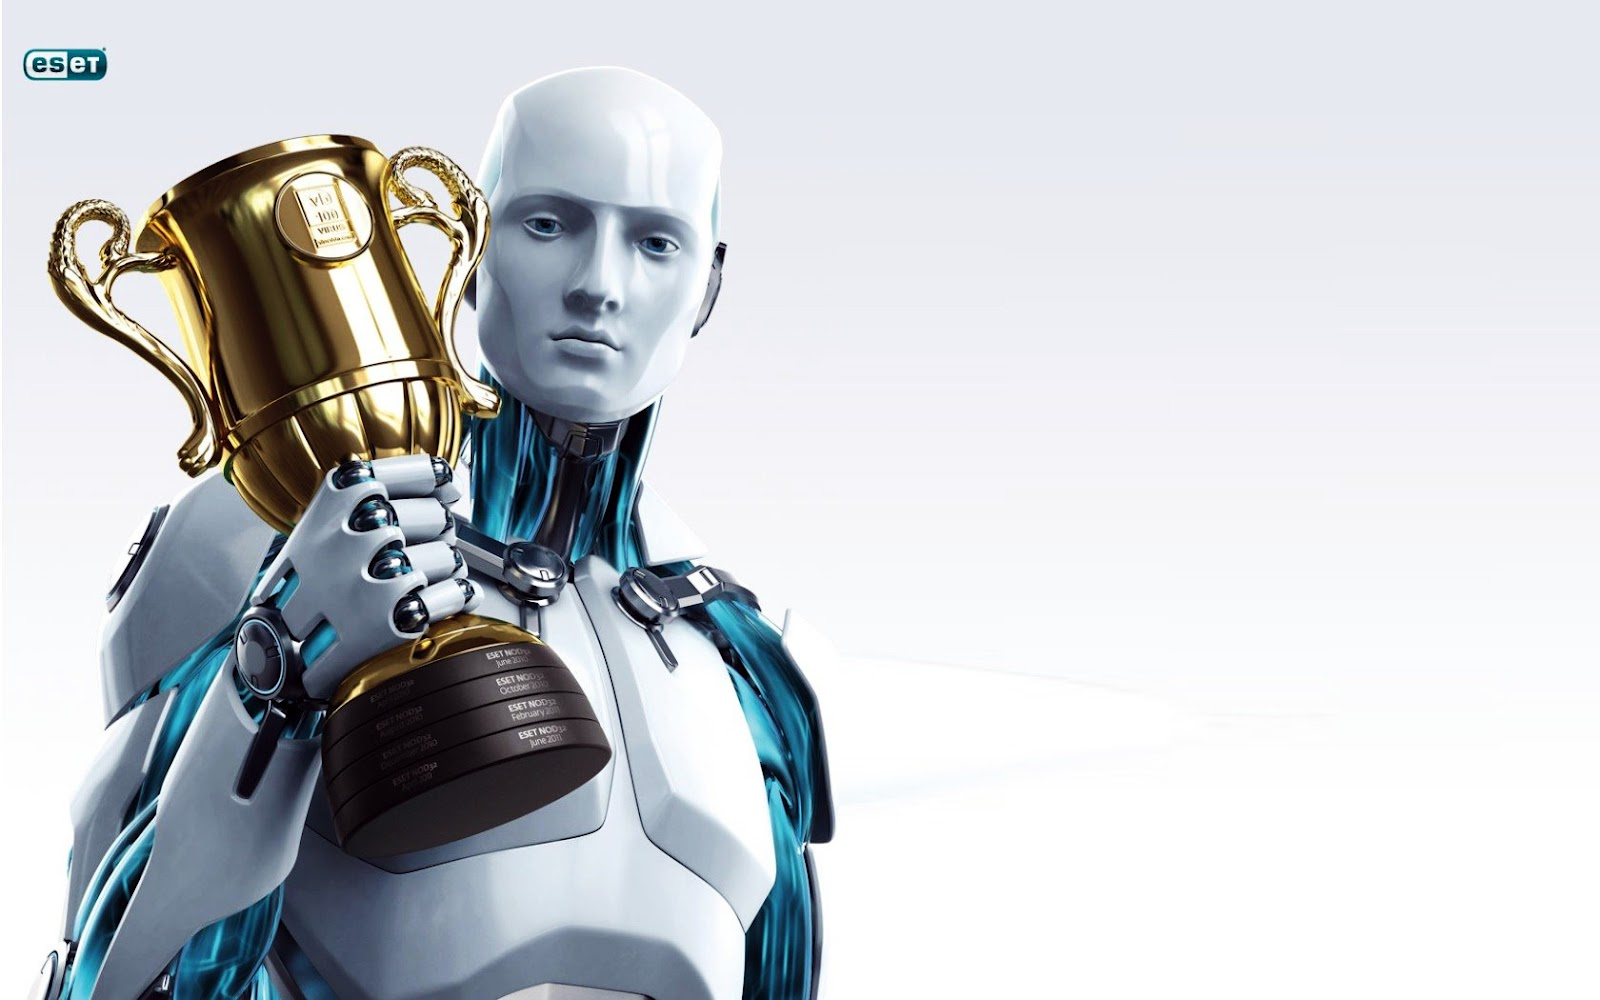 Eset Nod32 3D Robot HD Wallpapers Download Wallpapers in HD for 1600x1000